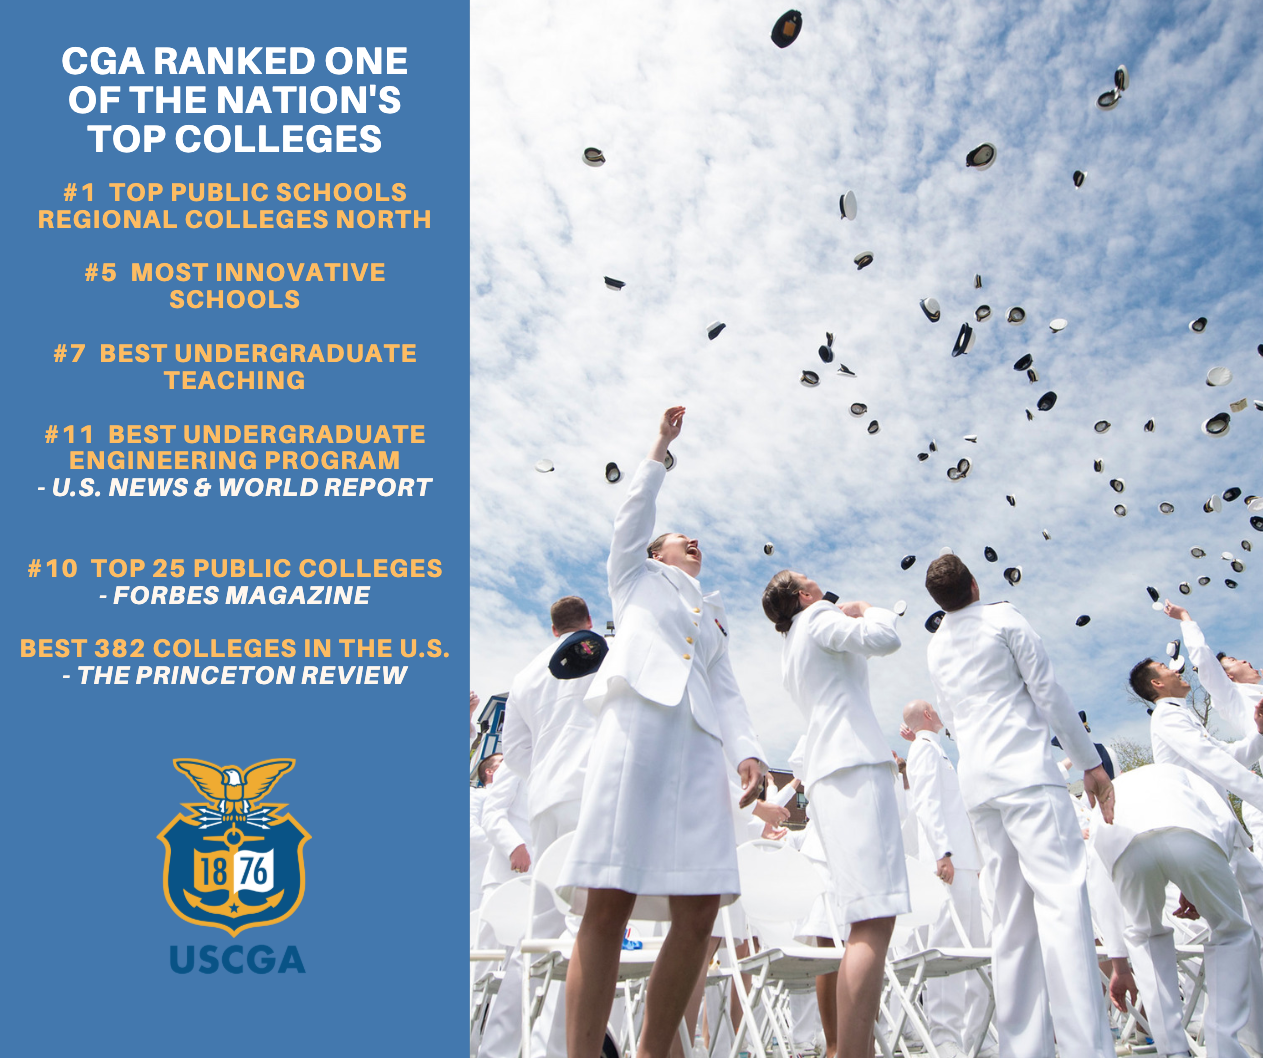 Coast Guard Academy ranked on of the nation's top colleges